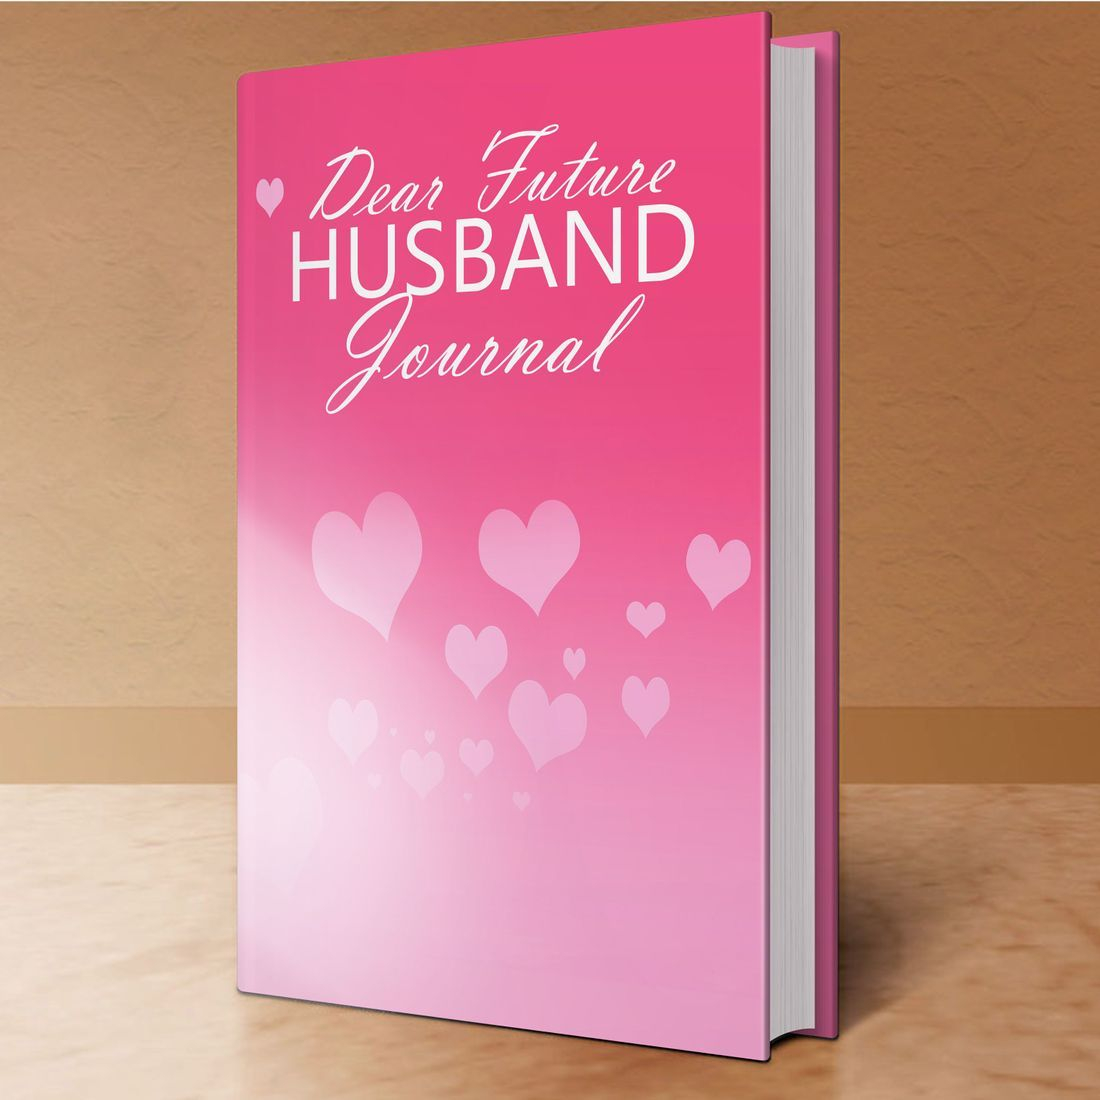 Dear Future Husband Journal